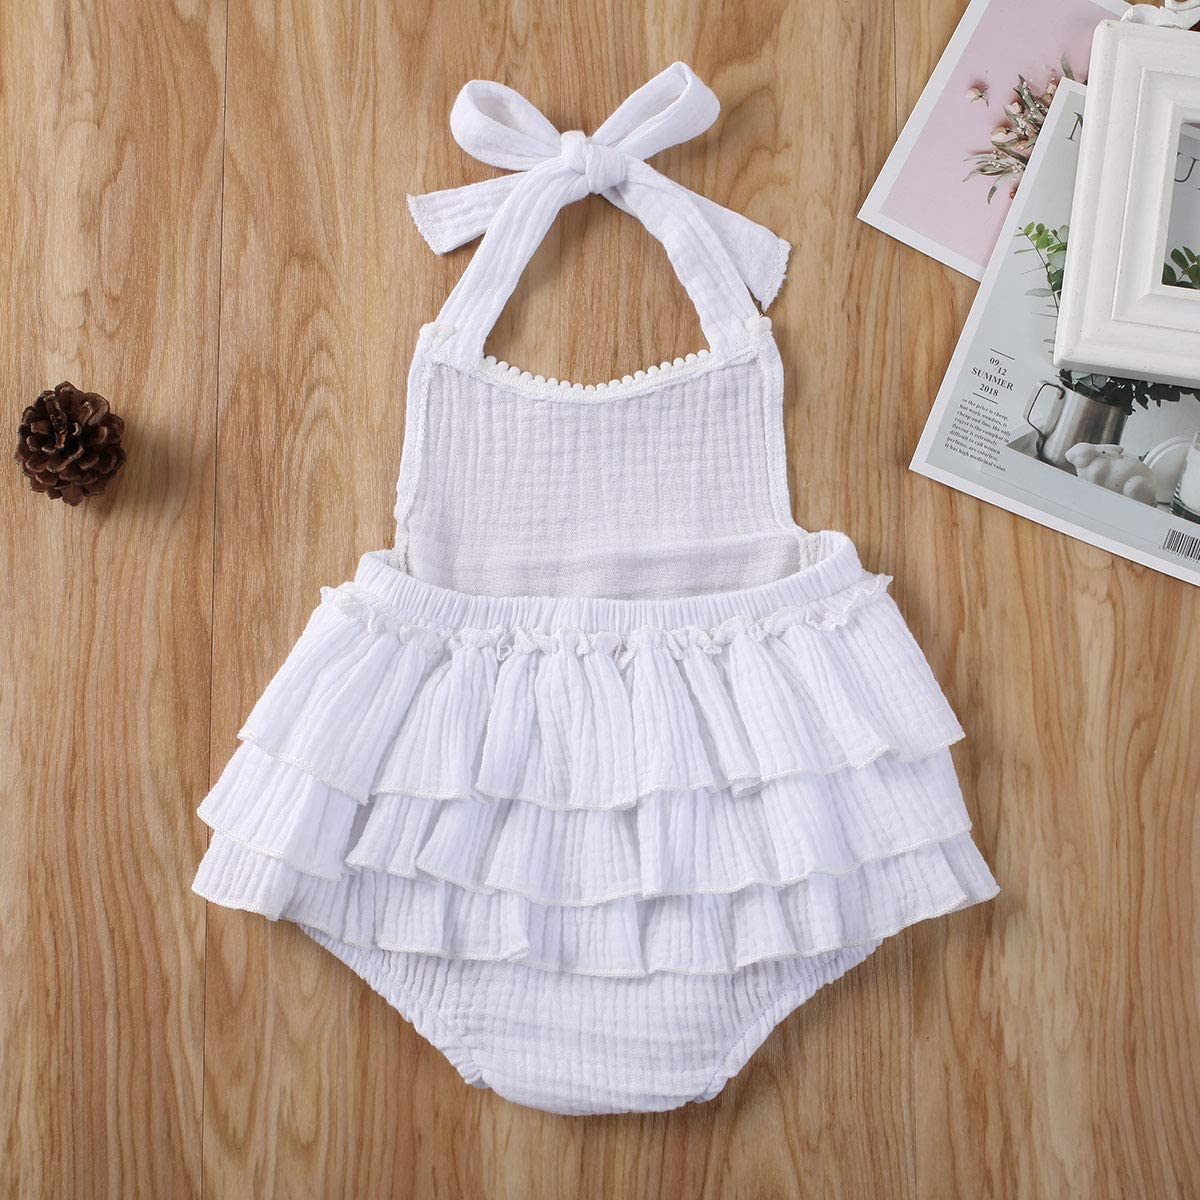 YUION Newborn Infant Baby Girl Romper Halter Sleeveless Backless Bodysuit Cotton Linen Jumpsuit One Piece Outfit Clothes